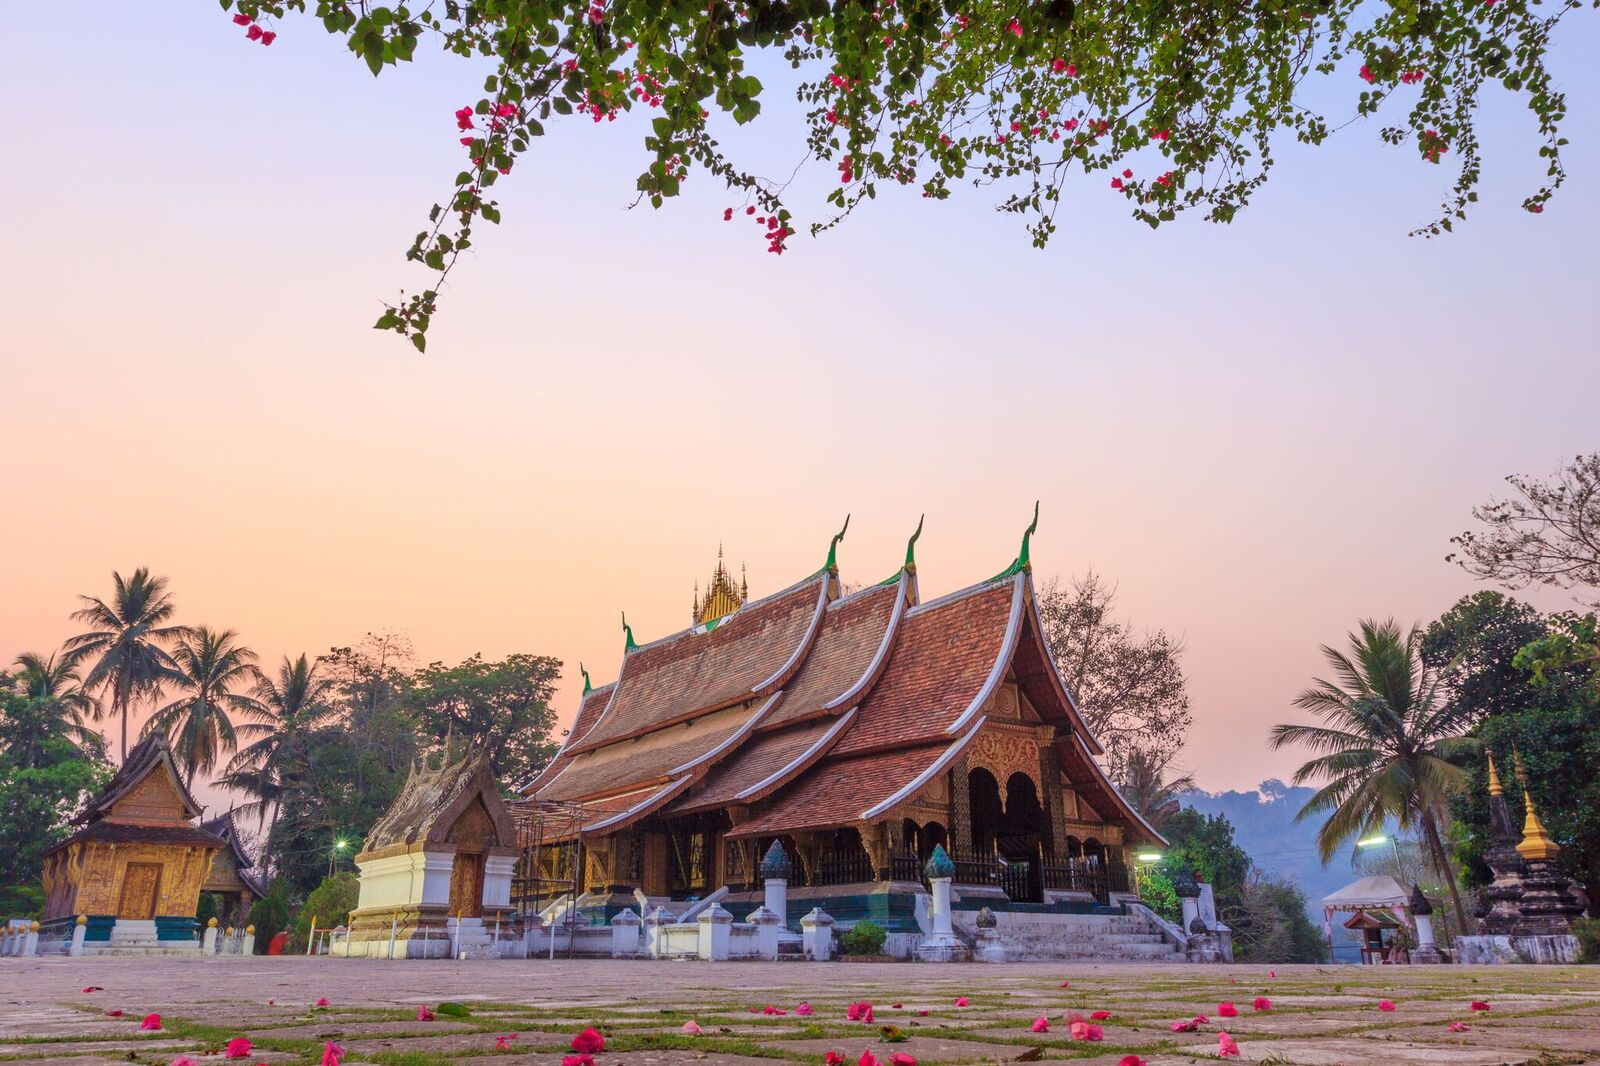 Wat Xieng Thong in Luang Prabang, Laos, included in tours offered by Asia Vacation Group